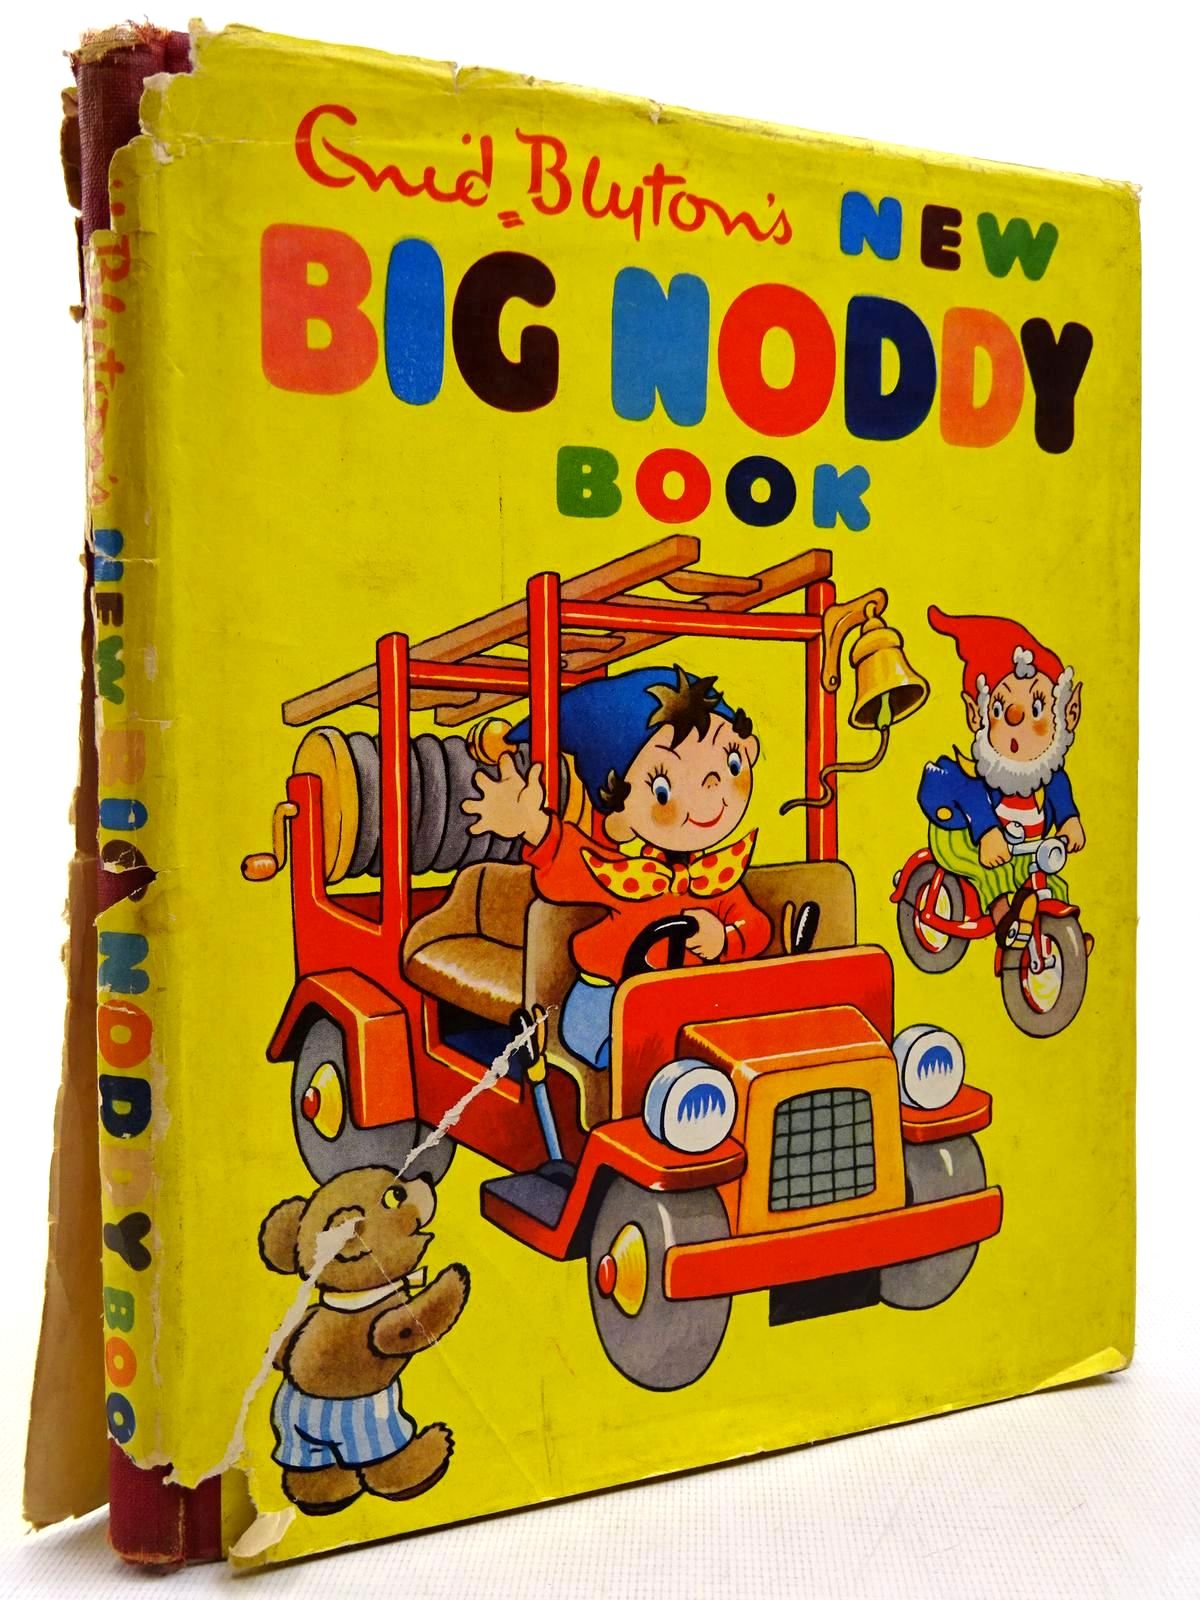 Photo of THE NEW BIG NODDY BOOK written by Blyton, Enid published by Sampson Low, Marston & Co. Ltd., Dennis Dobson (STOCK CODE: 2129030)  for sale by Stella & Rose's Books